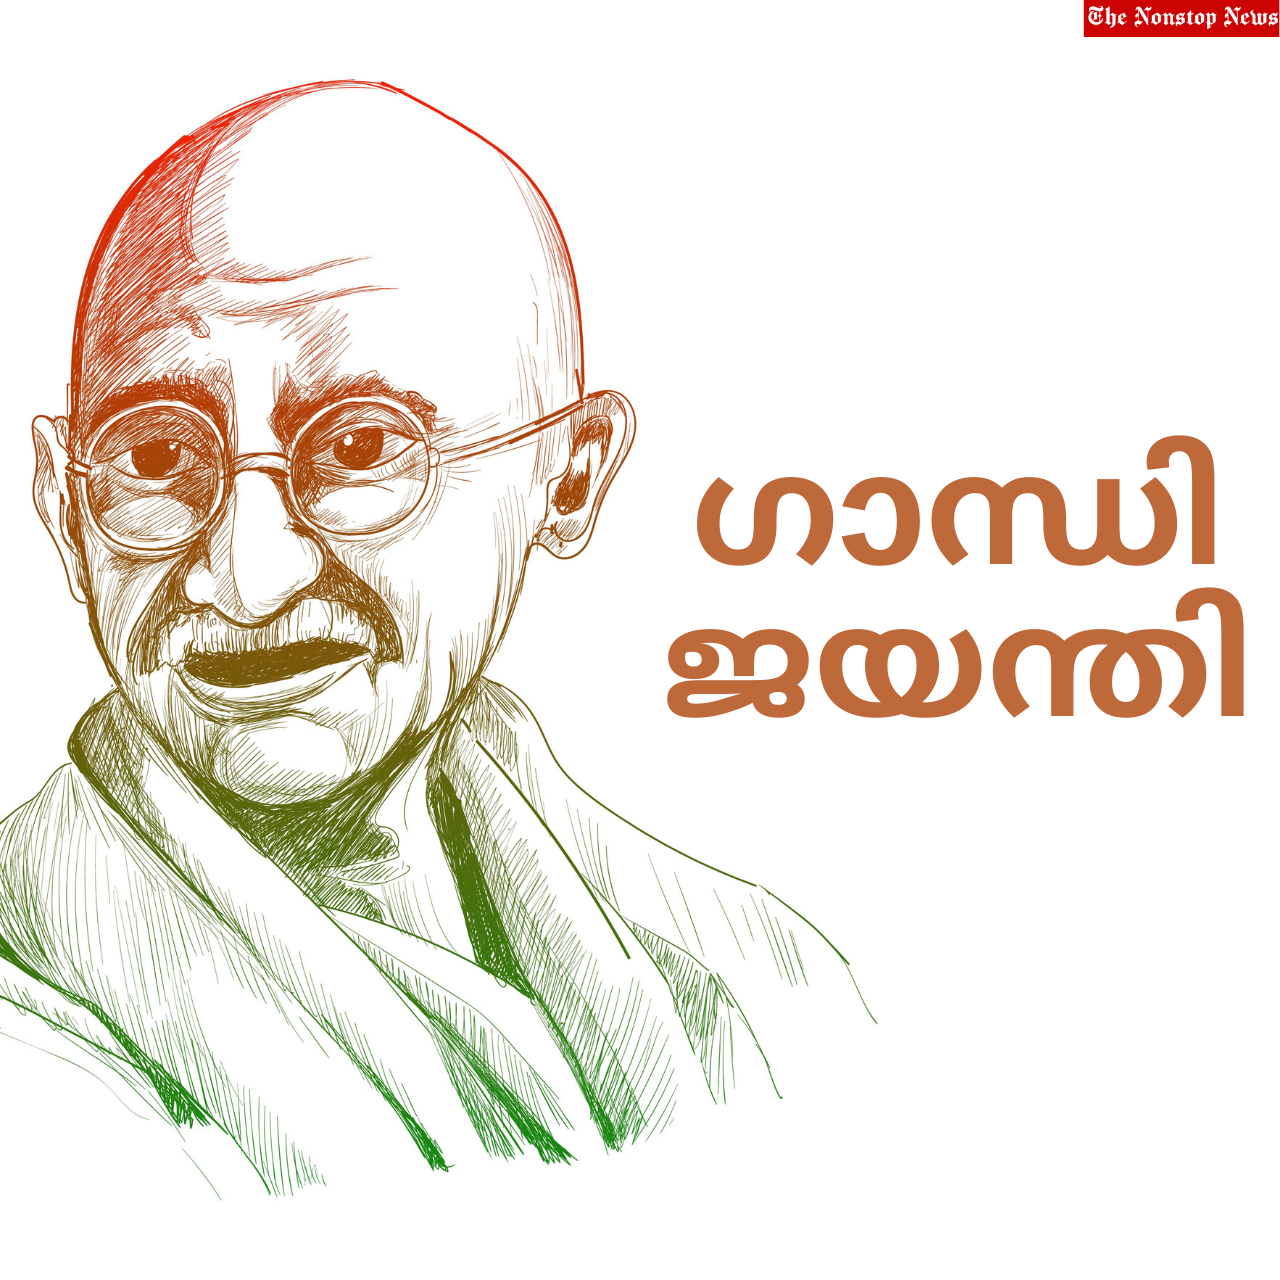 Gandhi Jayanti 2021 Malayalam Wishes, Quotes, Messages, Wishes, Greetings, and HD Images to share